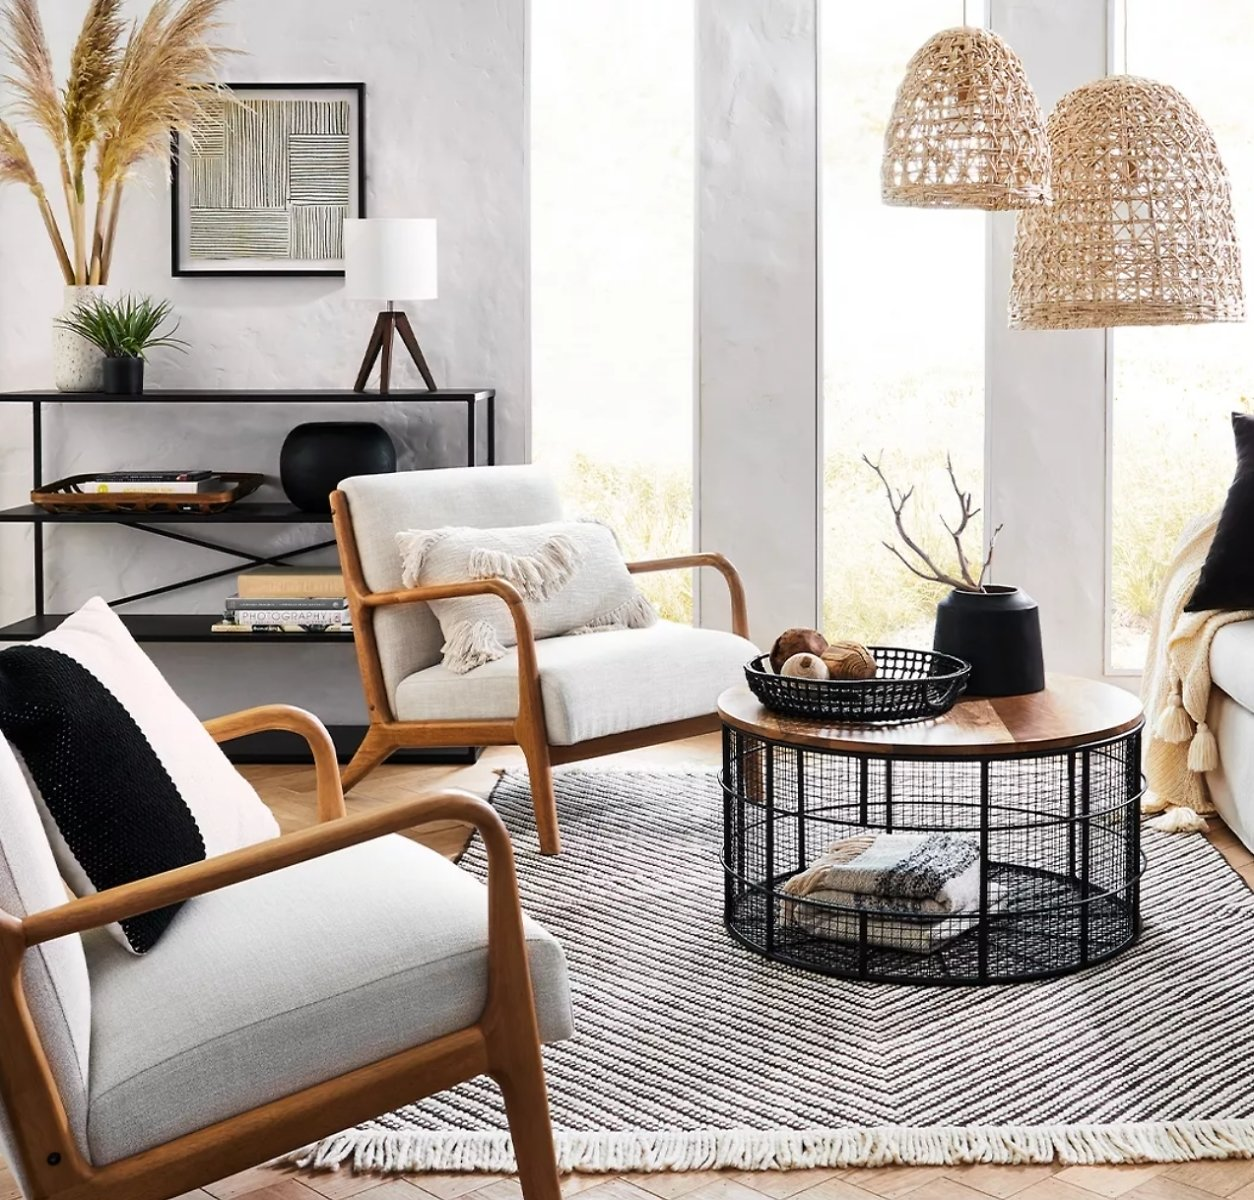 Living Room Furniture Starts From $50 - Target